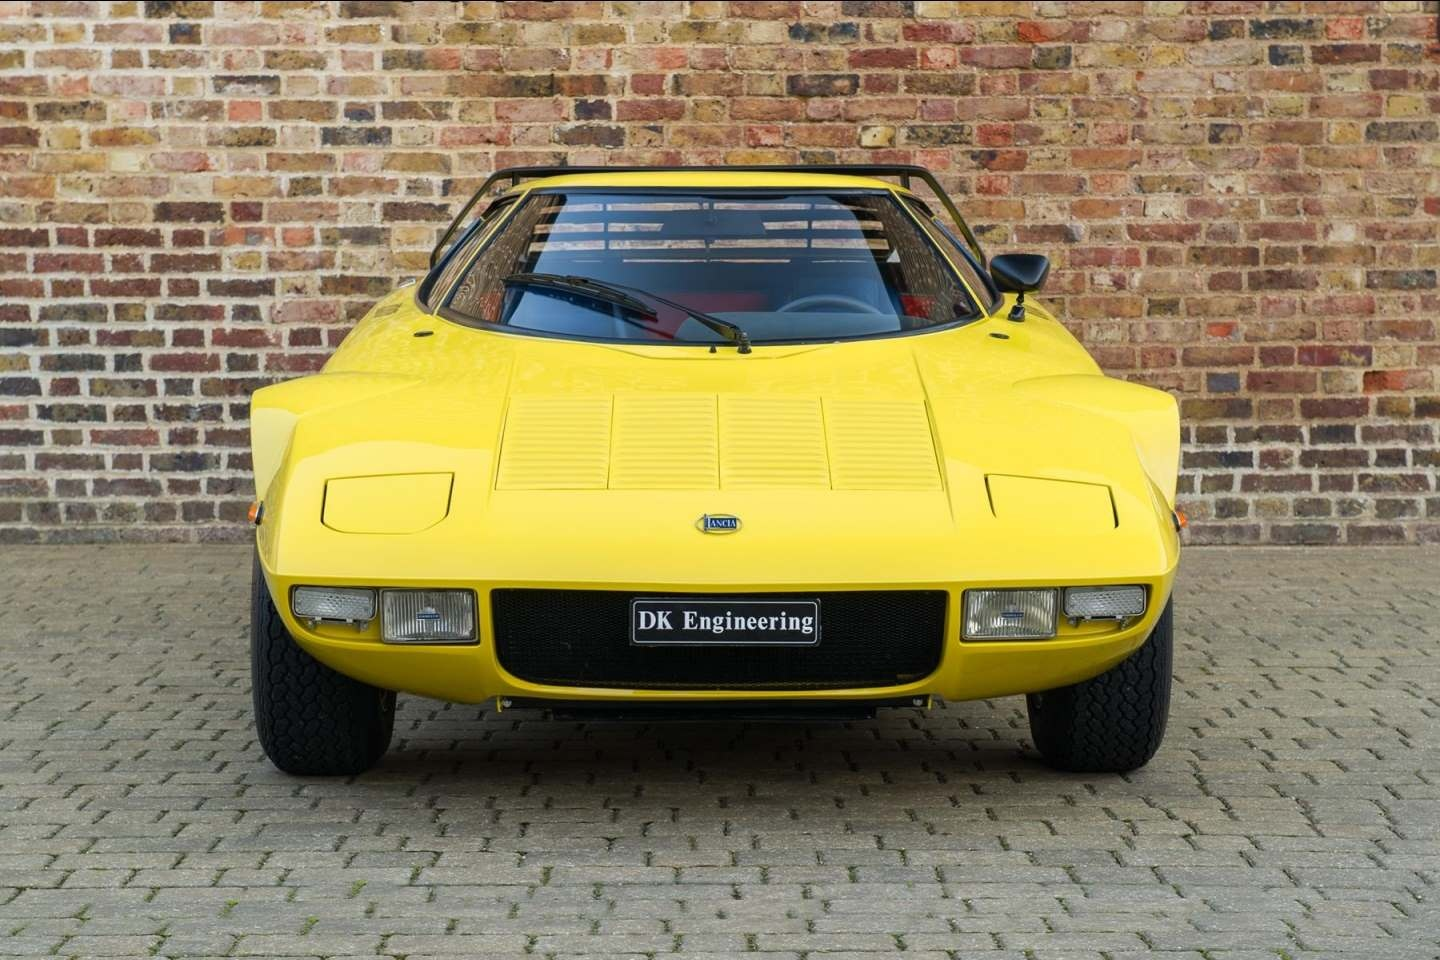 lancia stratos hf stradale for sale - vehicle sales - dk engineering